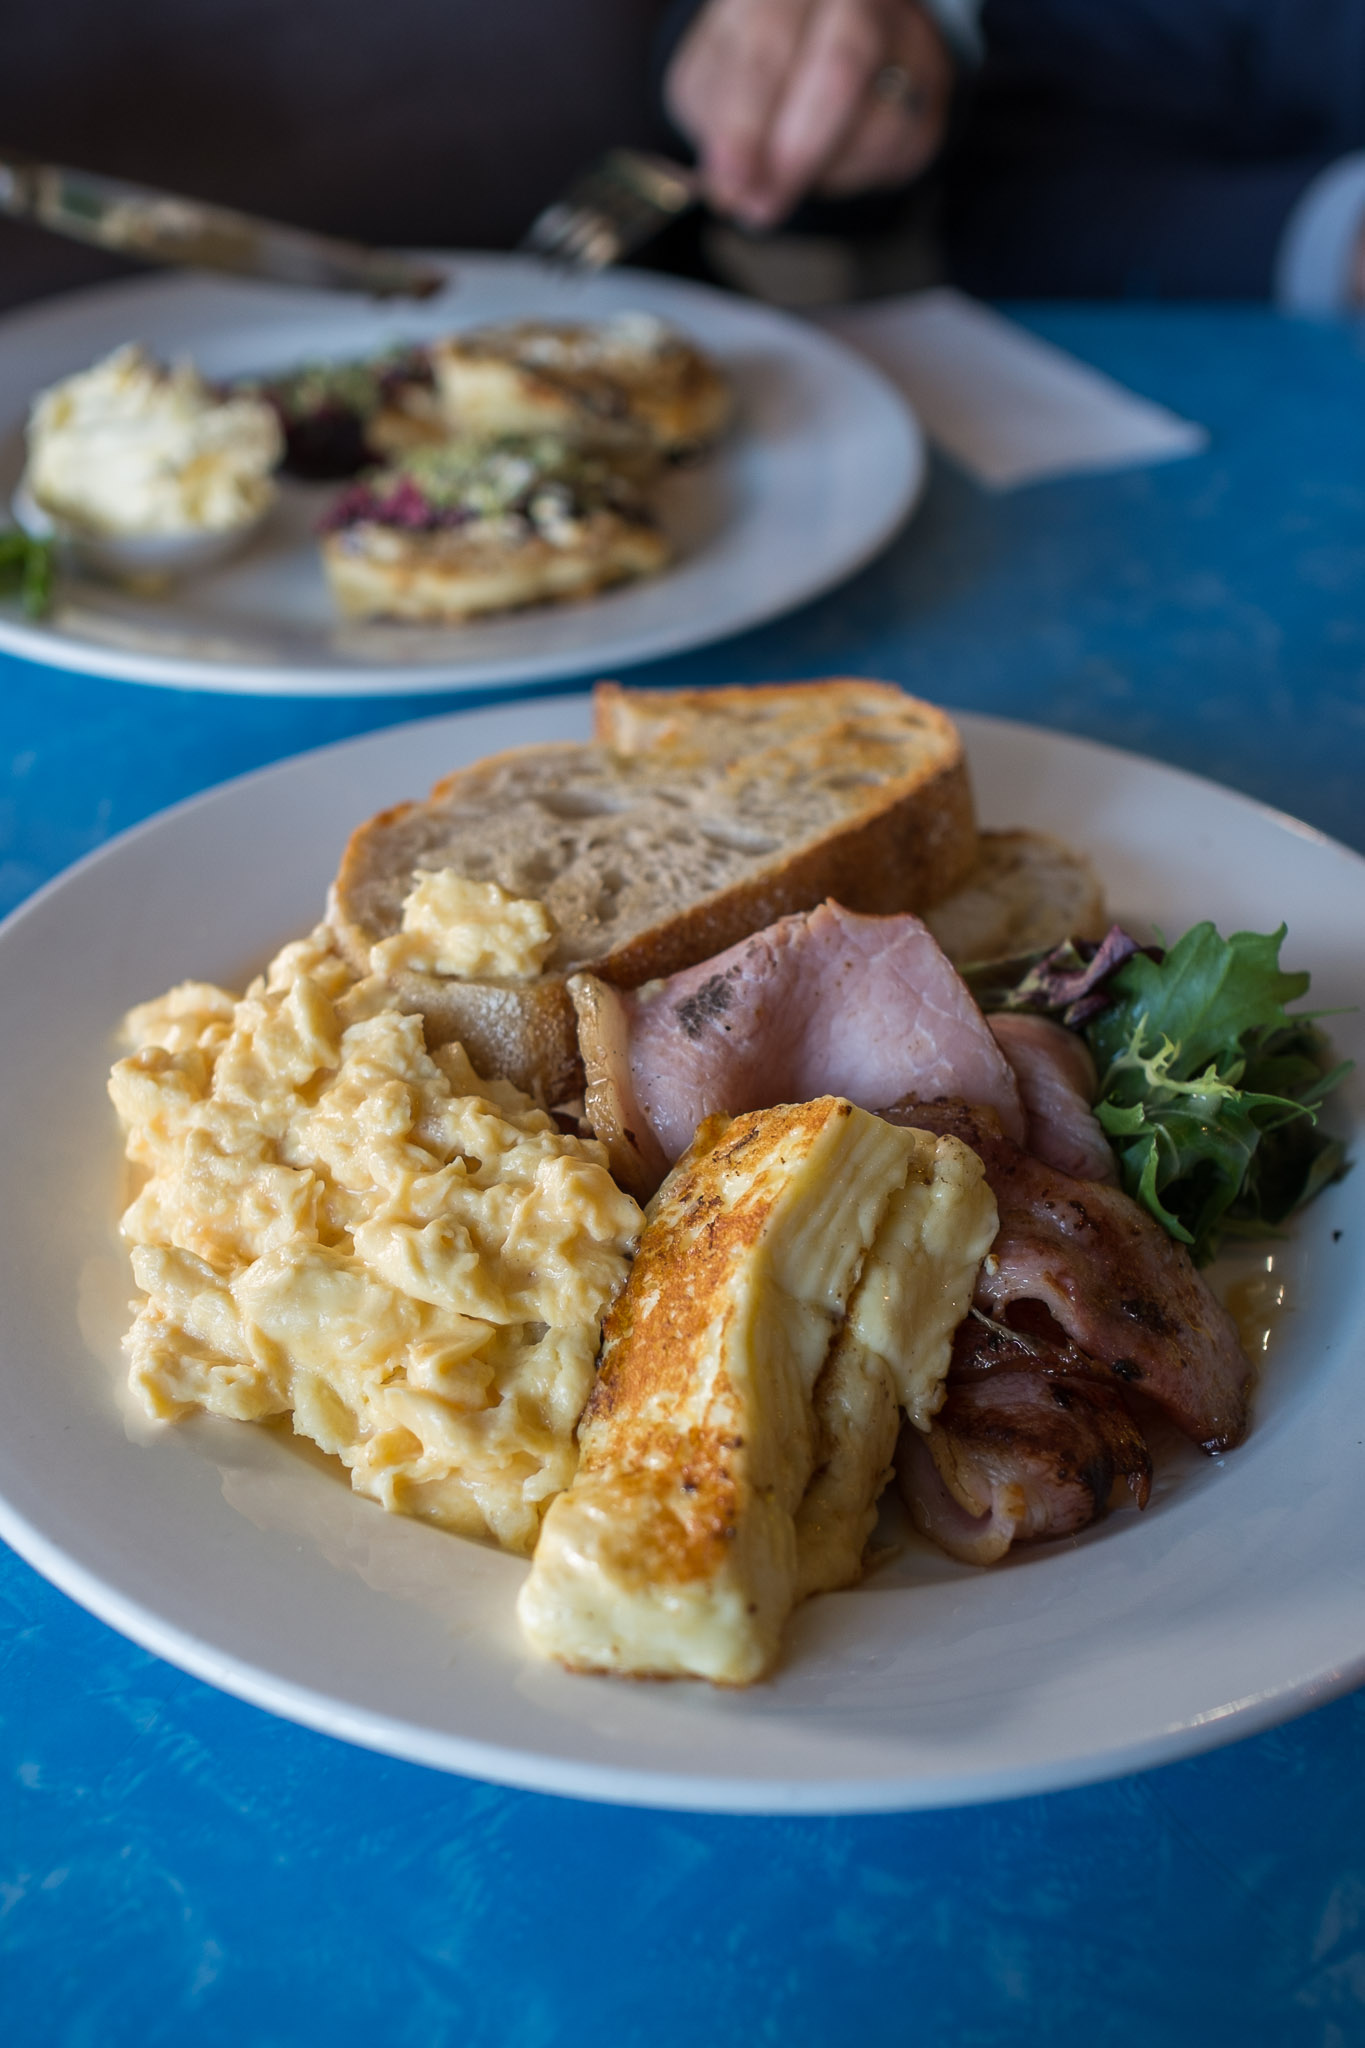 Scrambled eggs with sourdough toast (AU$10), bacon ($4) and grilled haloumi (AU$3.50)